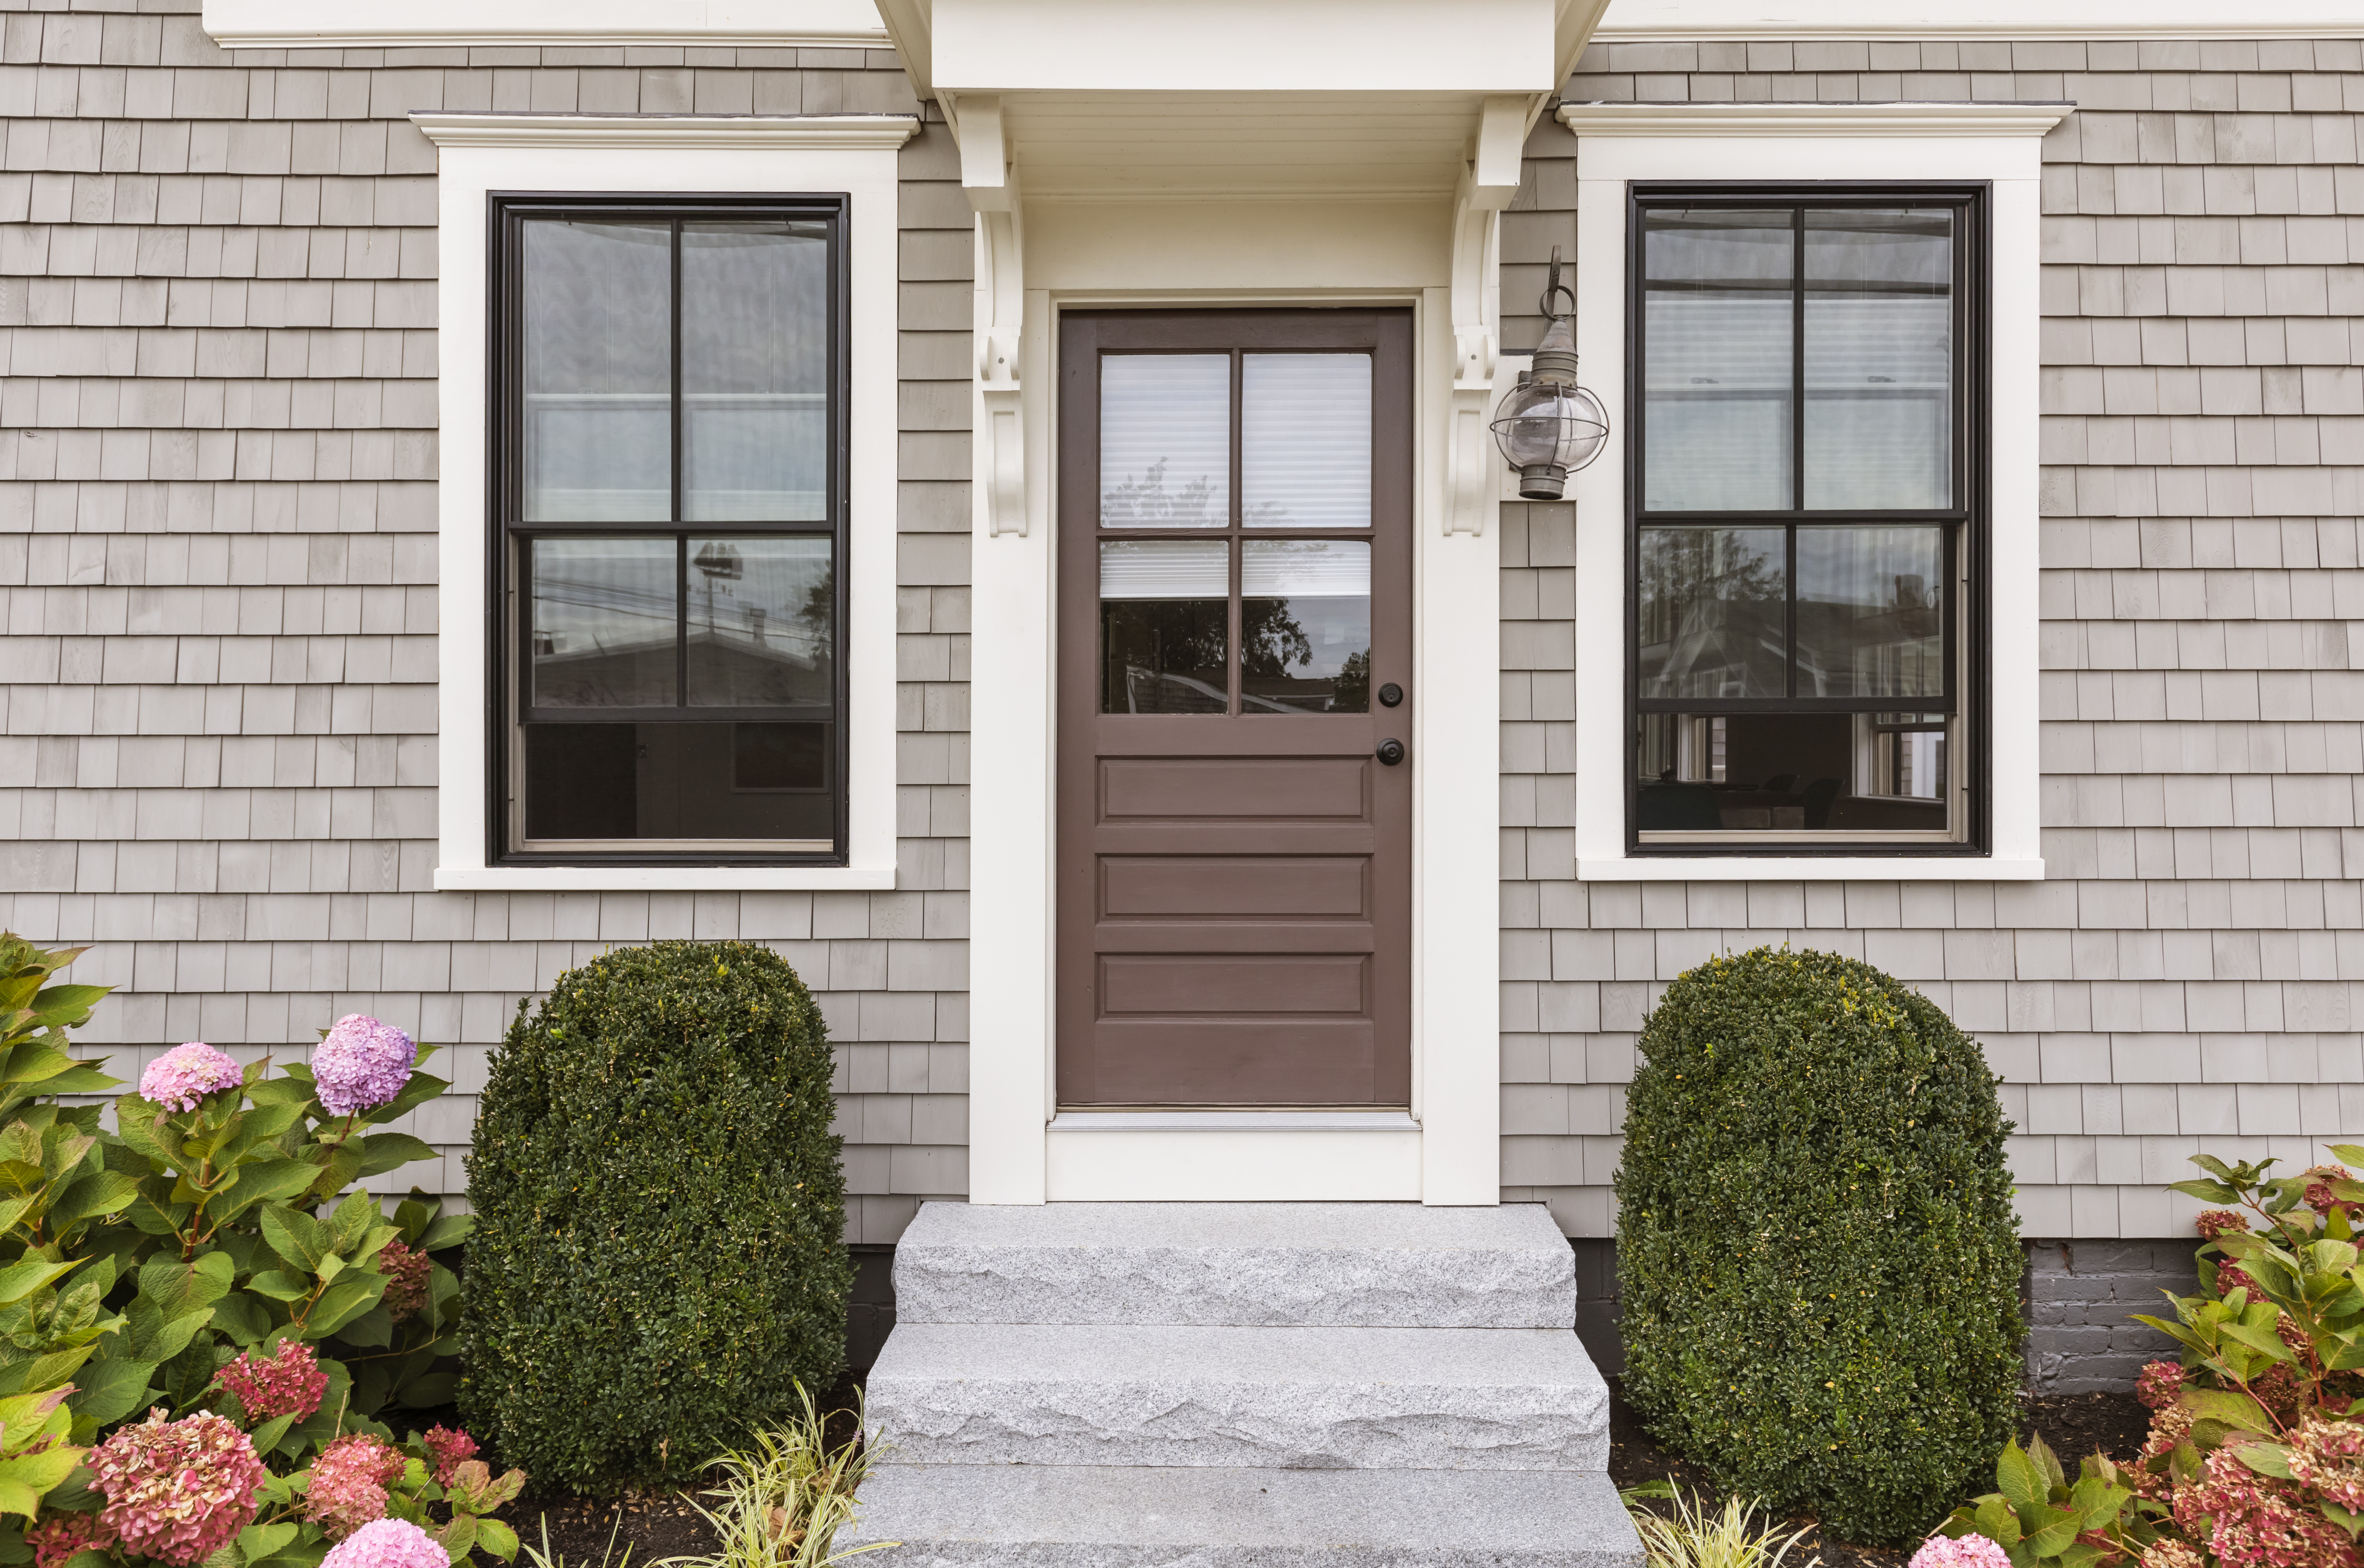 How to Fix a Gap in an Outside Door | Home Guides | SF Gate Insulated Mobile Home Exterior Doors on insulated outside doors, insulated house doors, insulated patio door curtains,